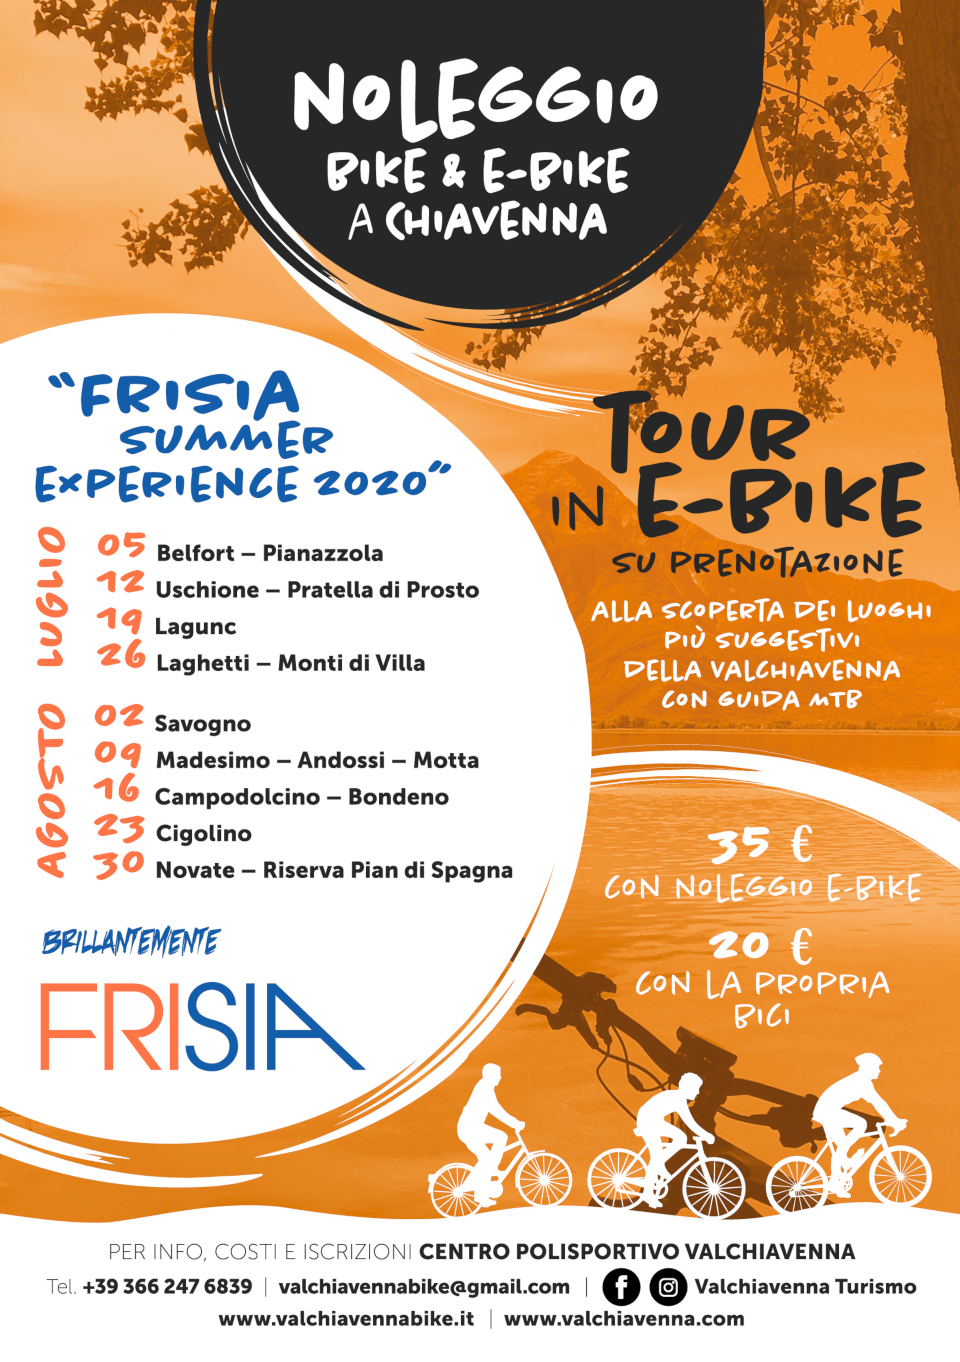 Tour in E-Bike